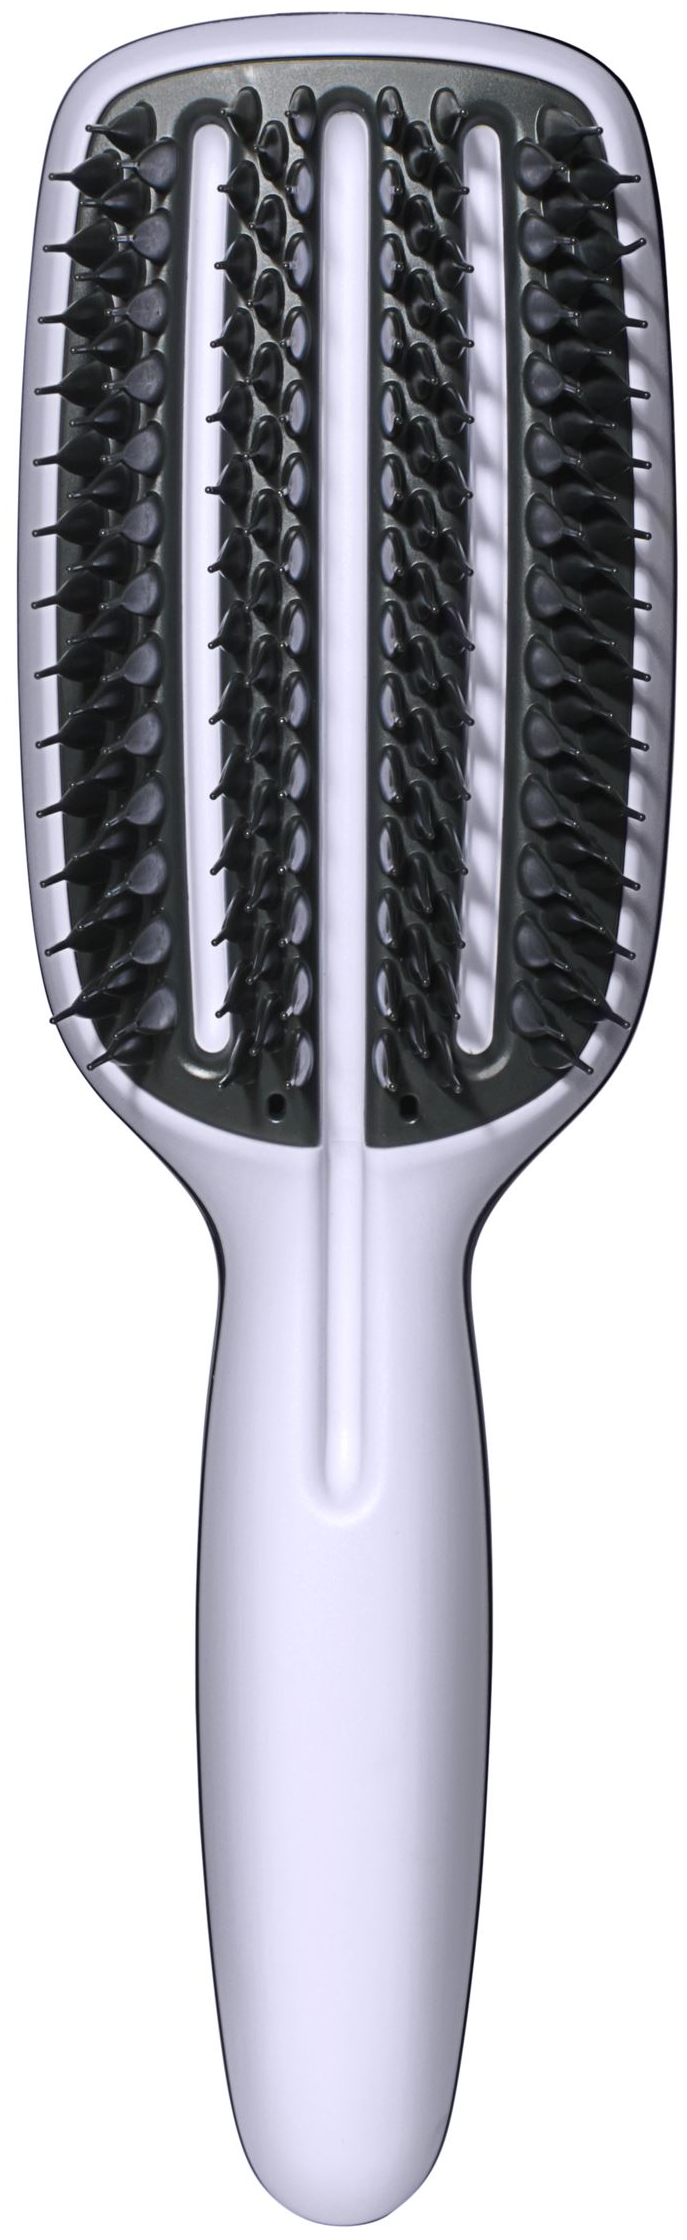 Tangle Teezer Blow-Styling Half Paddle 26068cc532